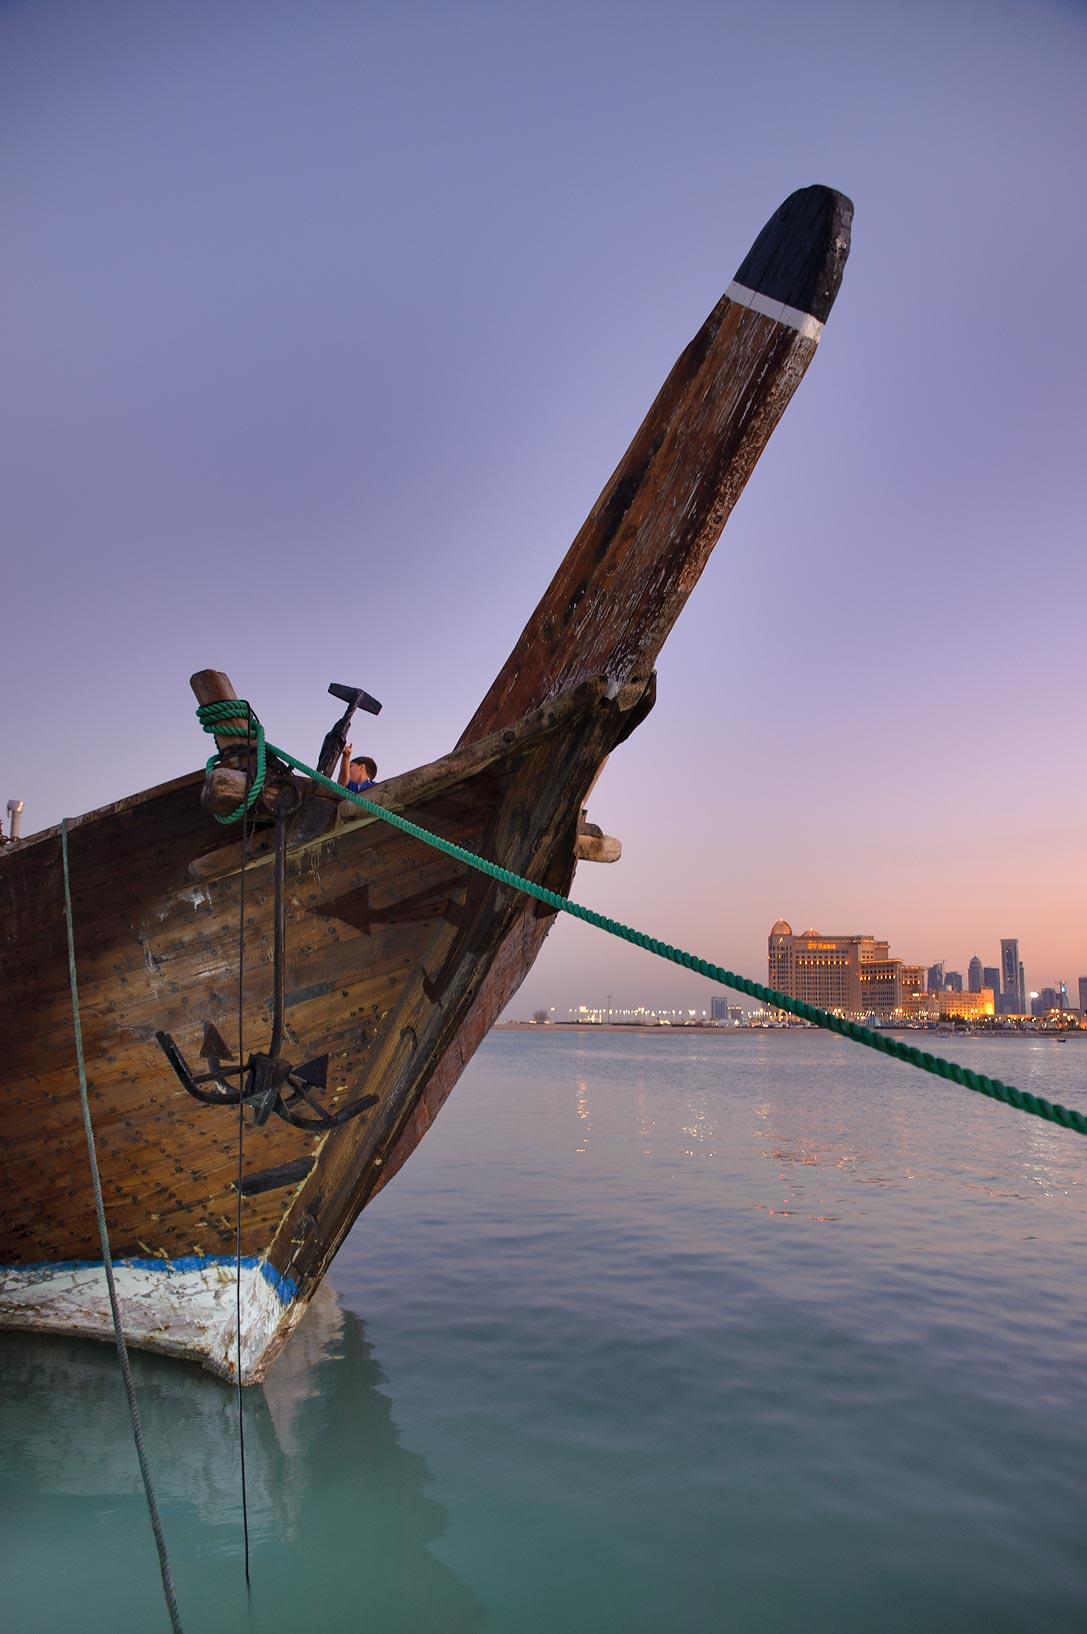 Boat prow at Traditional Dhow Festival in Katara Cultural Village. Doha, Qatar